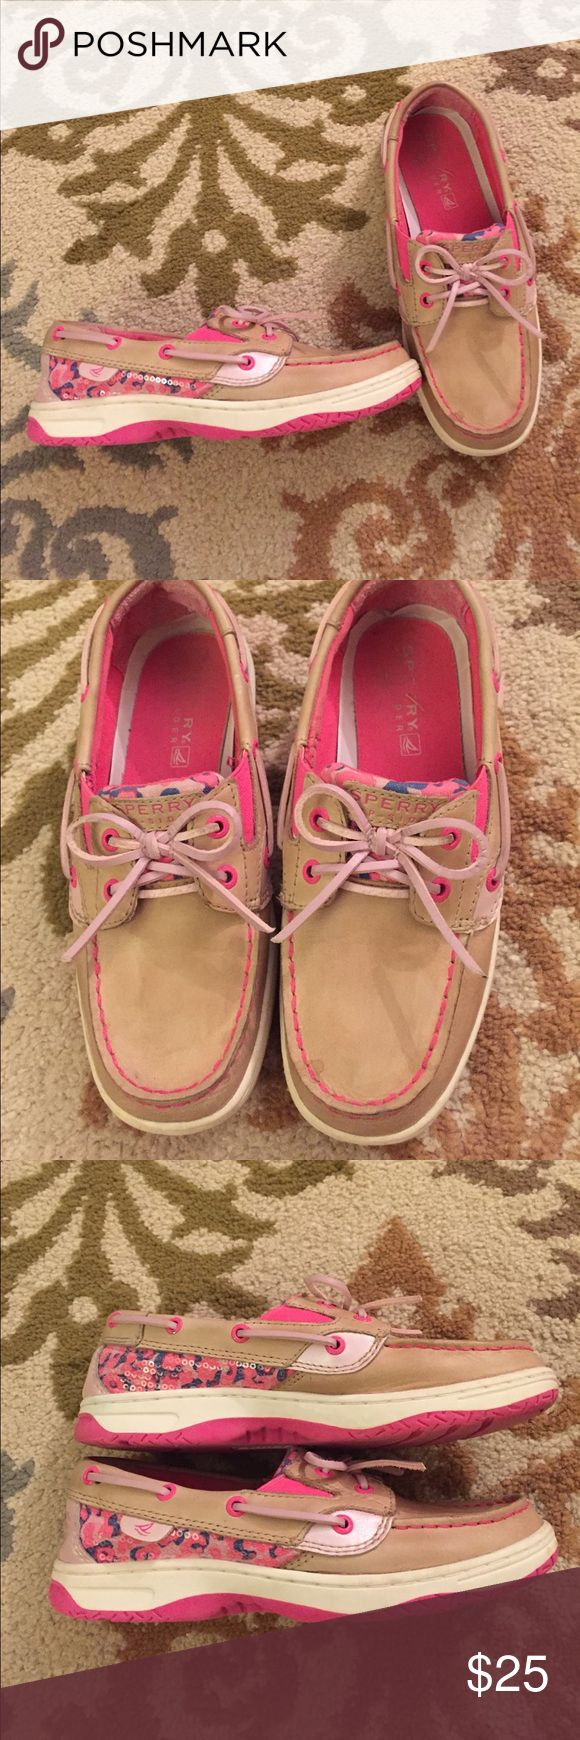 Girls Sperry Top-Sider shoes, tan and pink Girls Sperry Top-Sider shoes, tan and pink Sperry Top-Sider Shoes